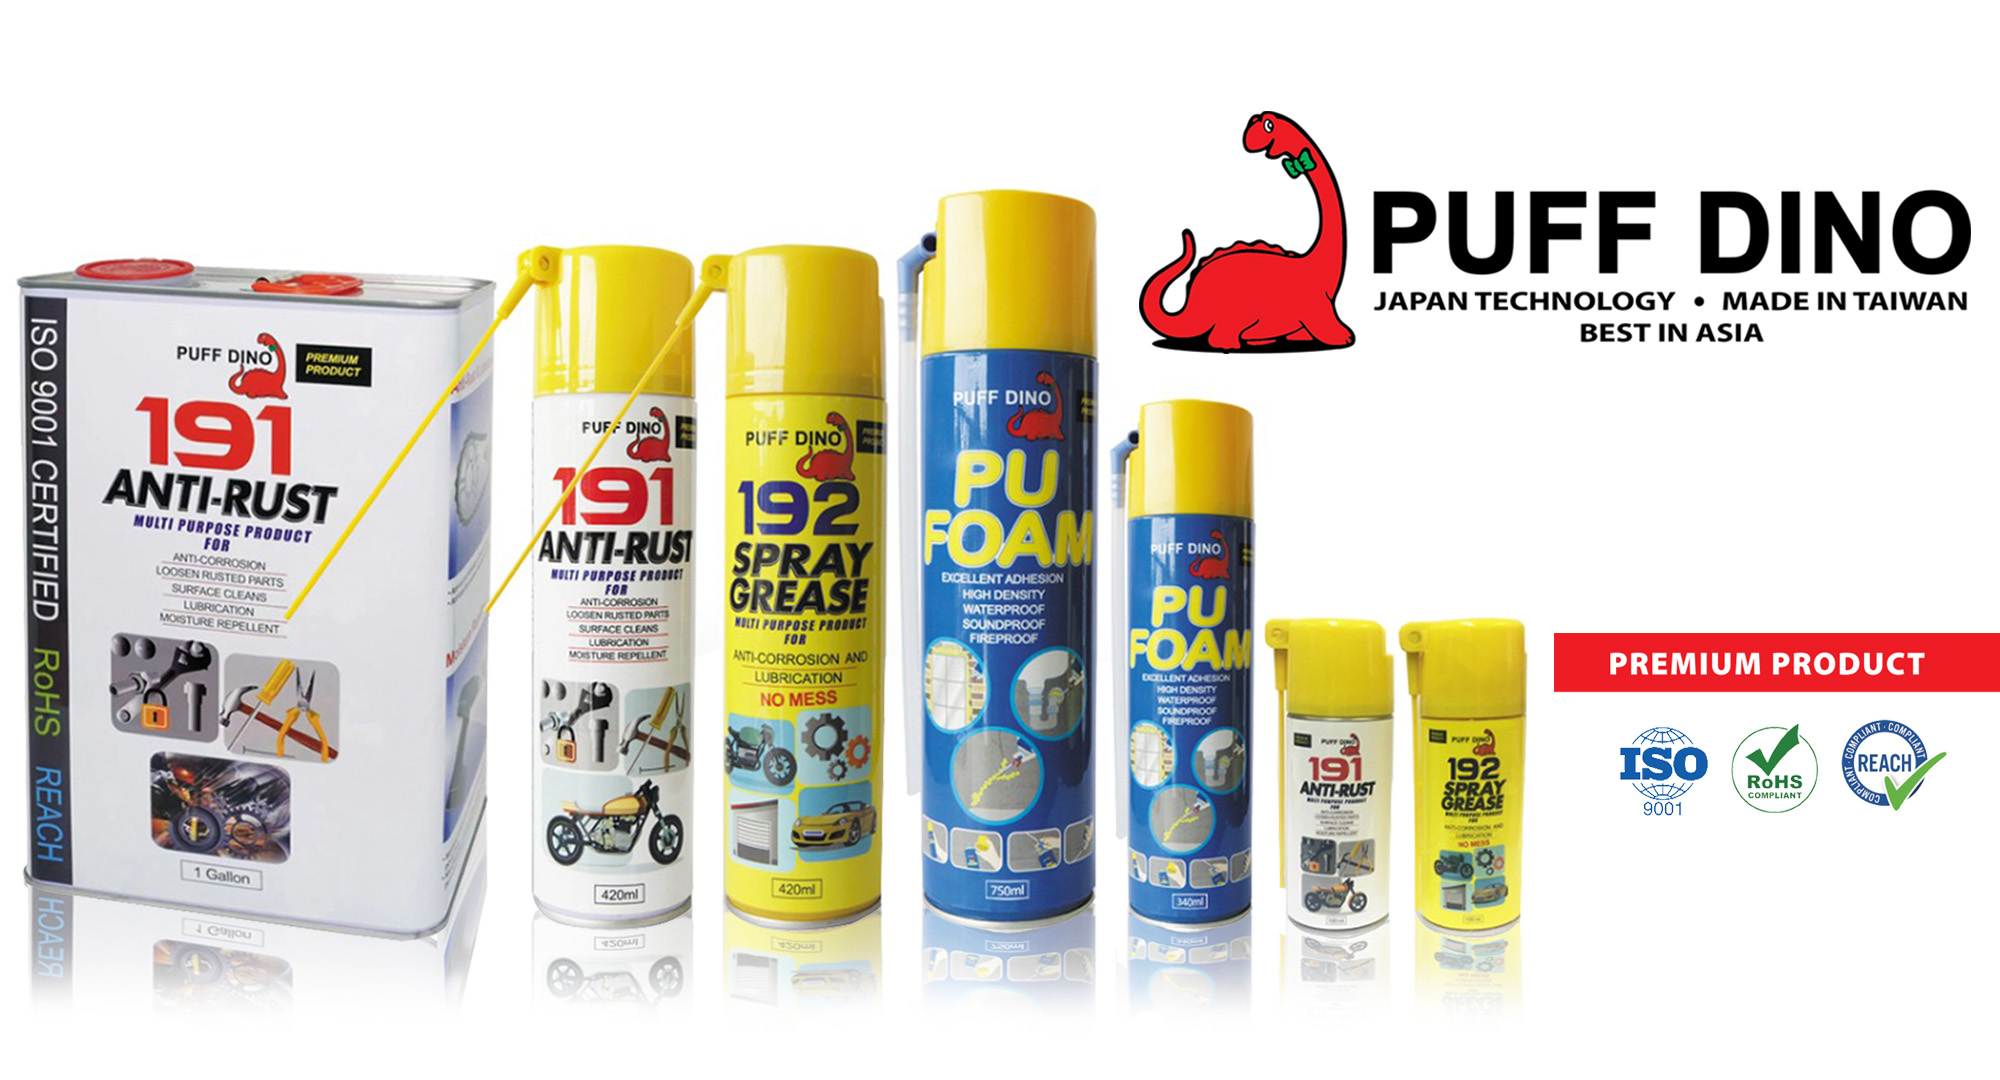 puff-dino_puffdino_multimayaka_pu-foam_anti-rust_spray-grease_header-slide2